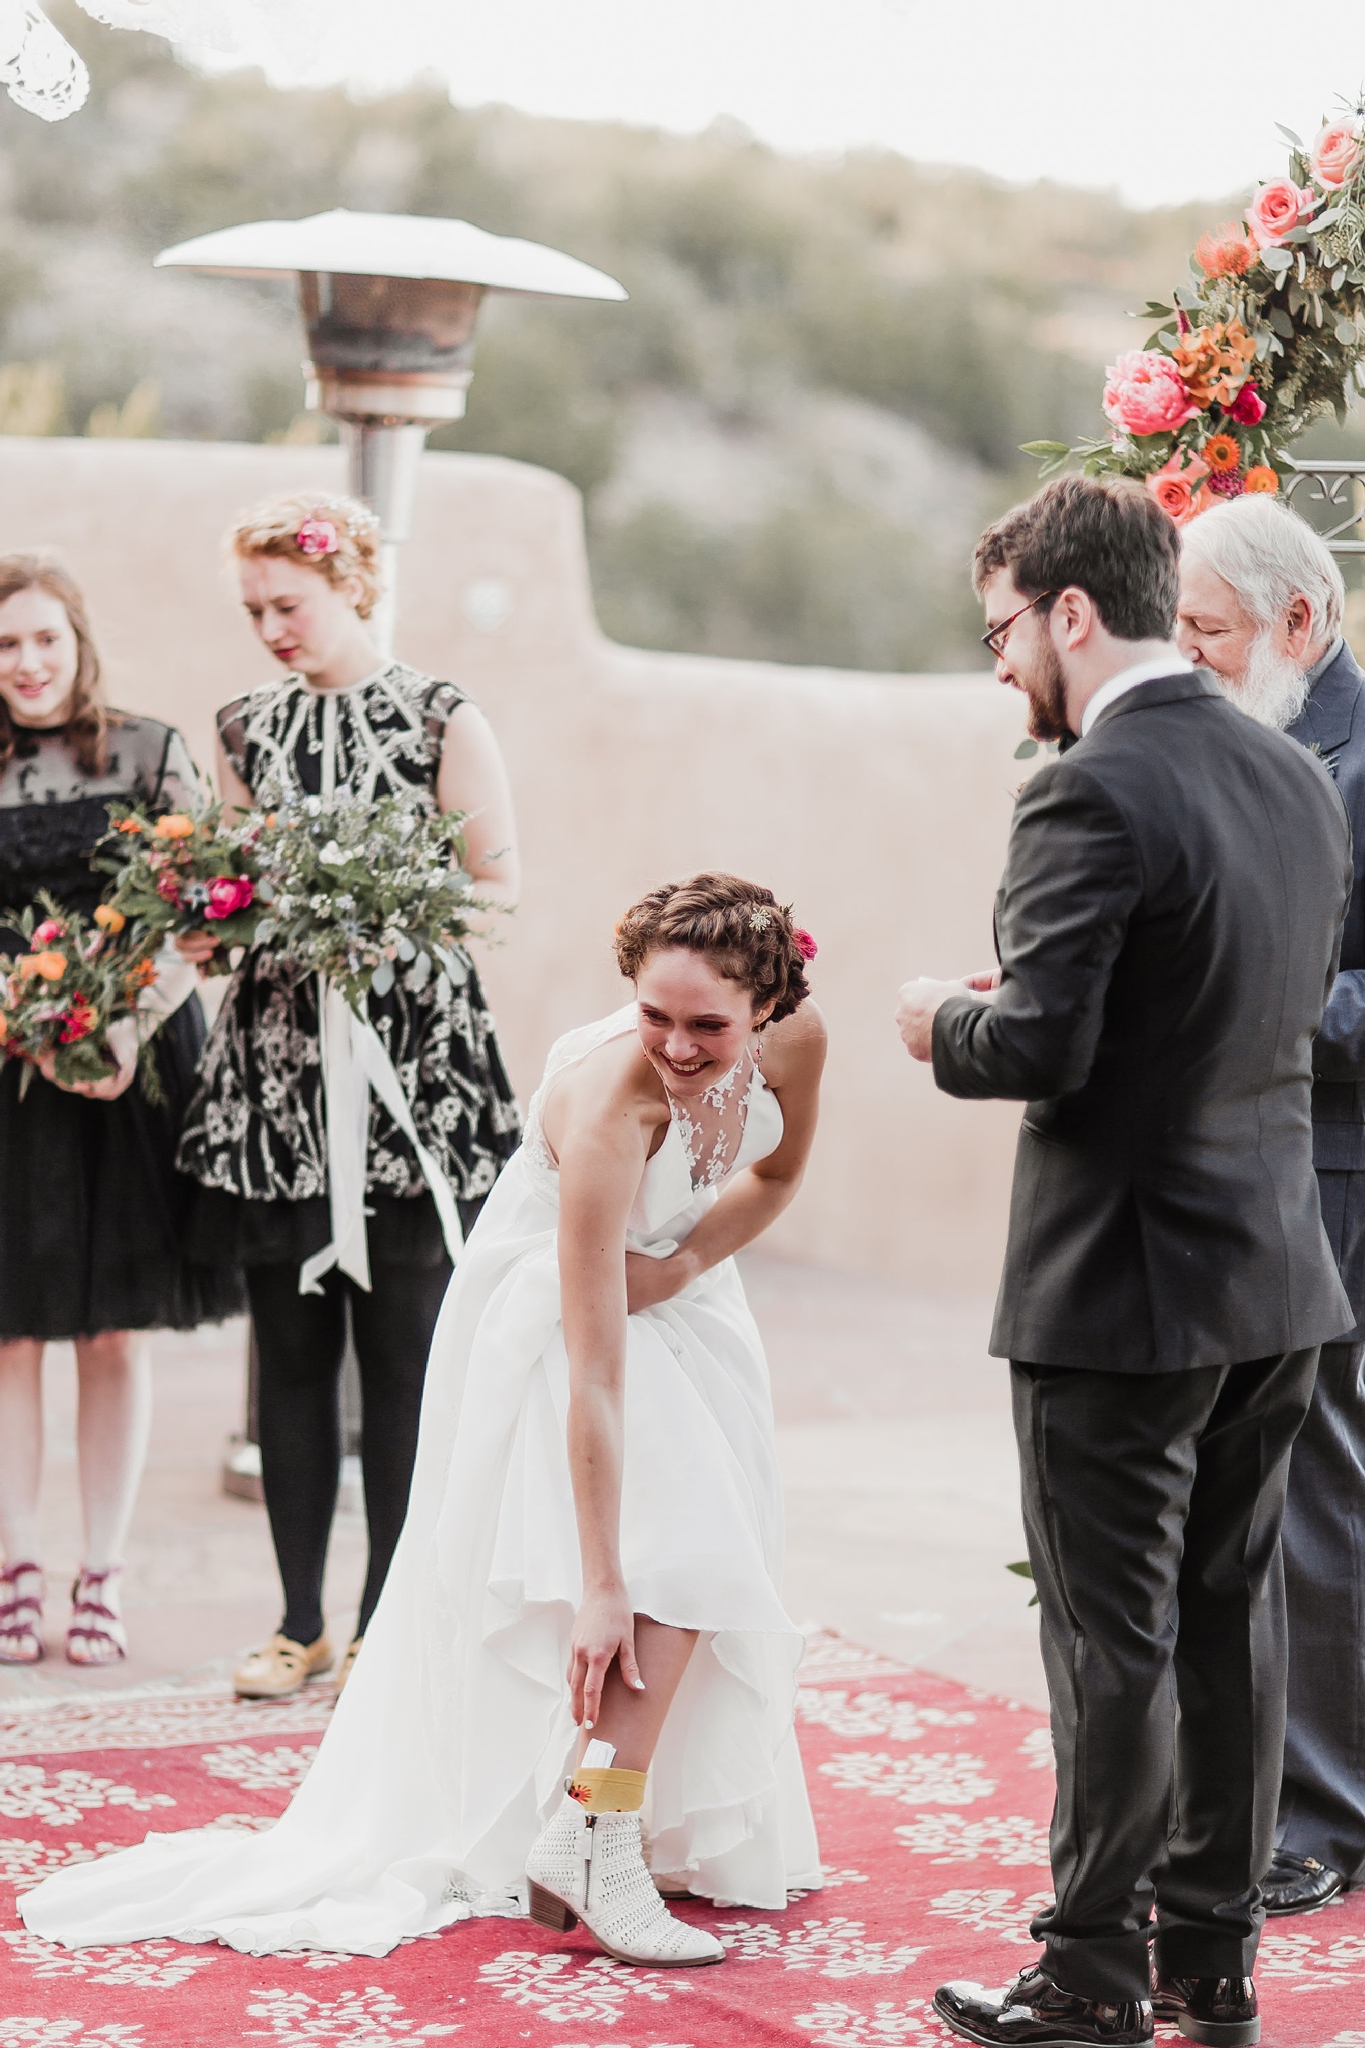 Alicia+lucia+photography+-+albuquerque+wedding+photographer+-+santa+fe+wedding+photography+-+new+mexico+wedding+photographer+-+new+mexico+wedding+-+wedding+vows+-+writing+your+own+vows+-+wedding+inspo_0030.jpg